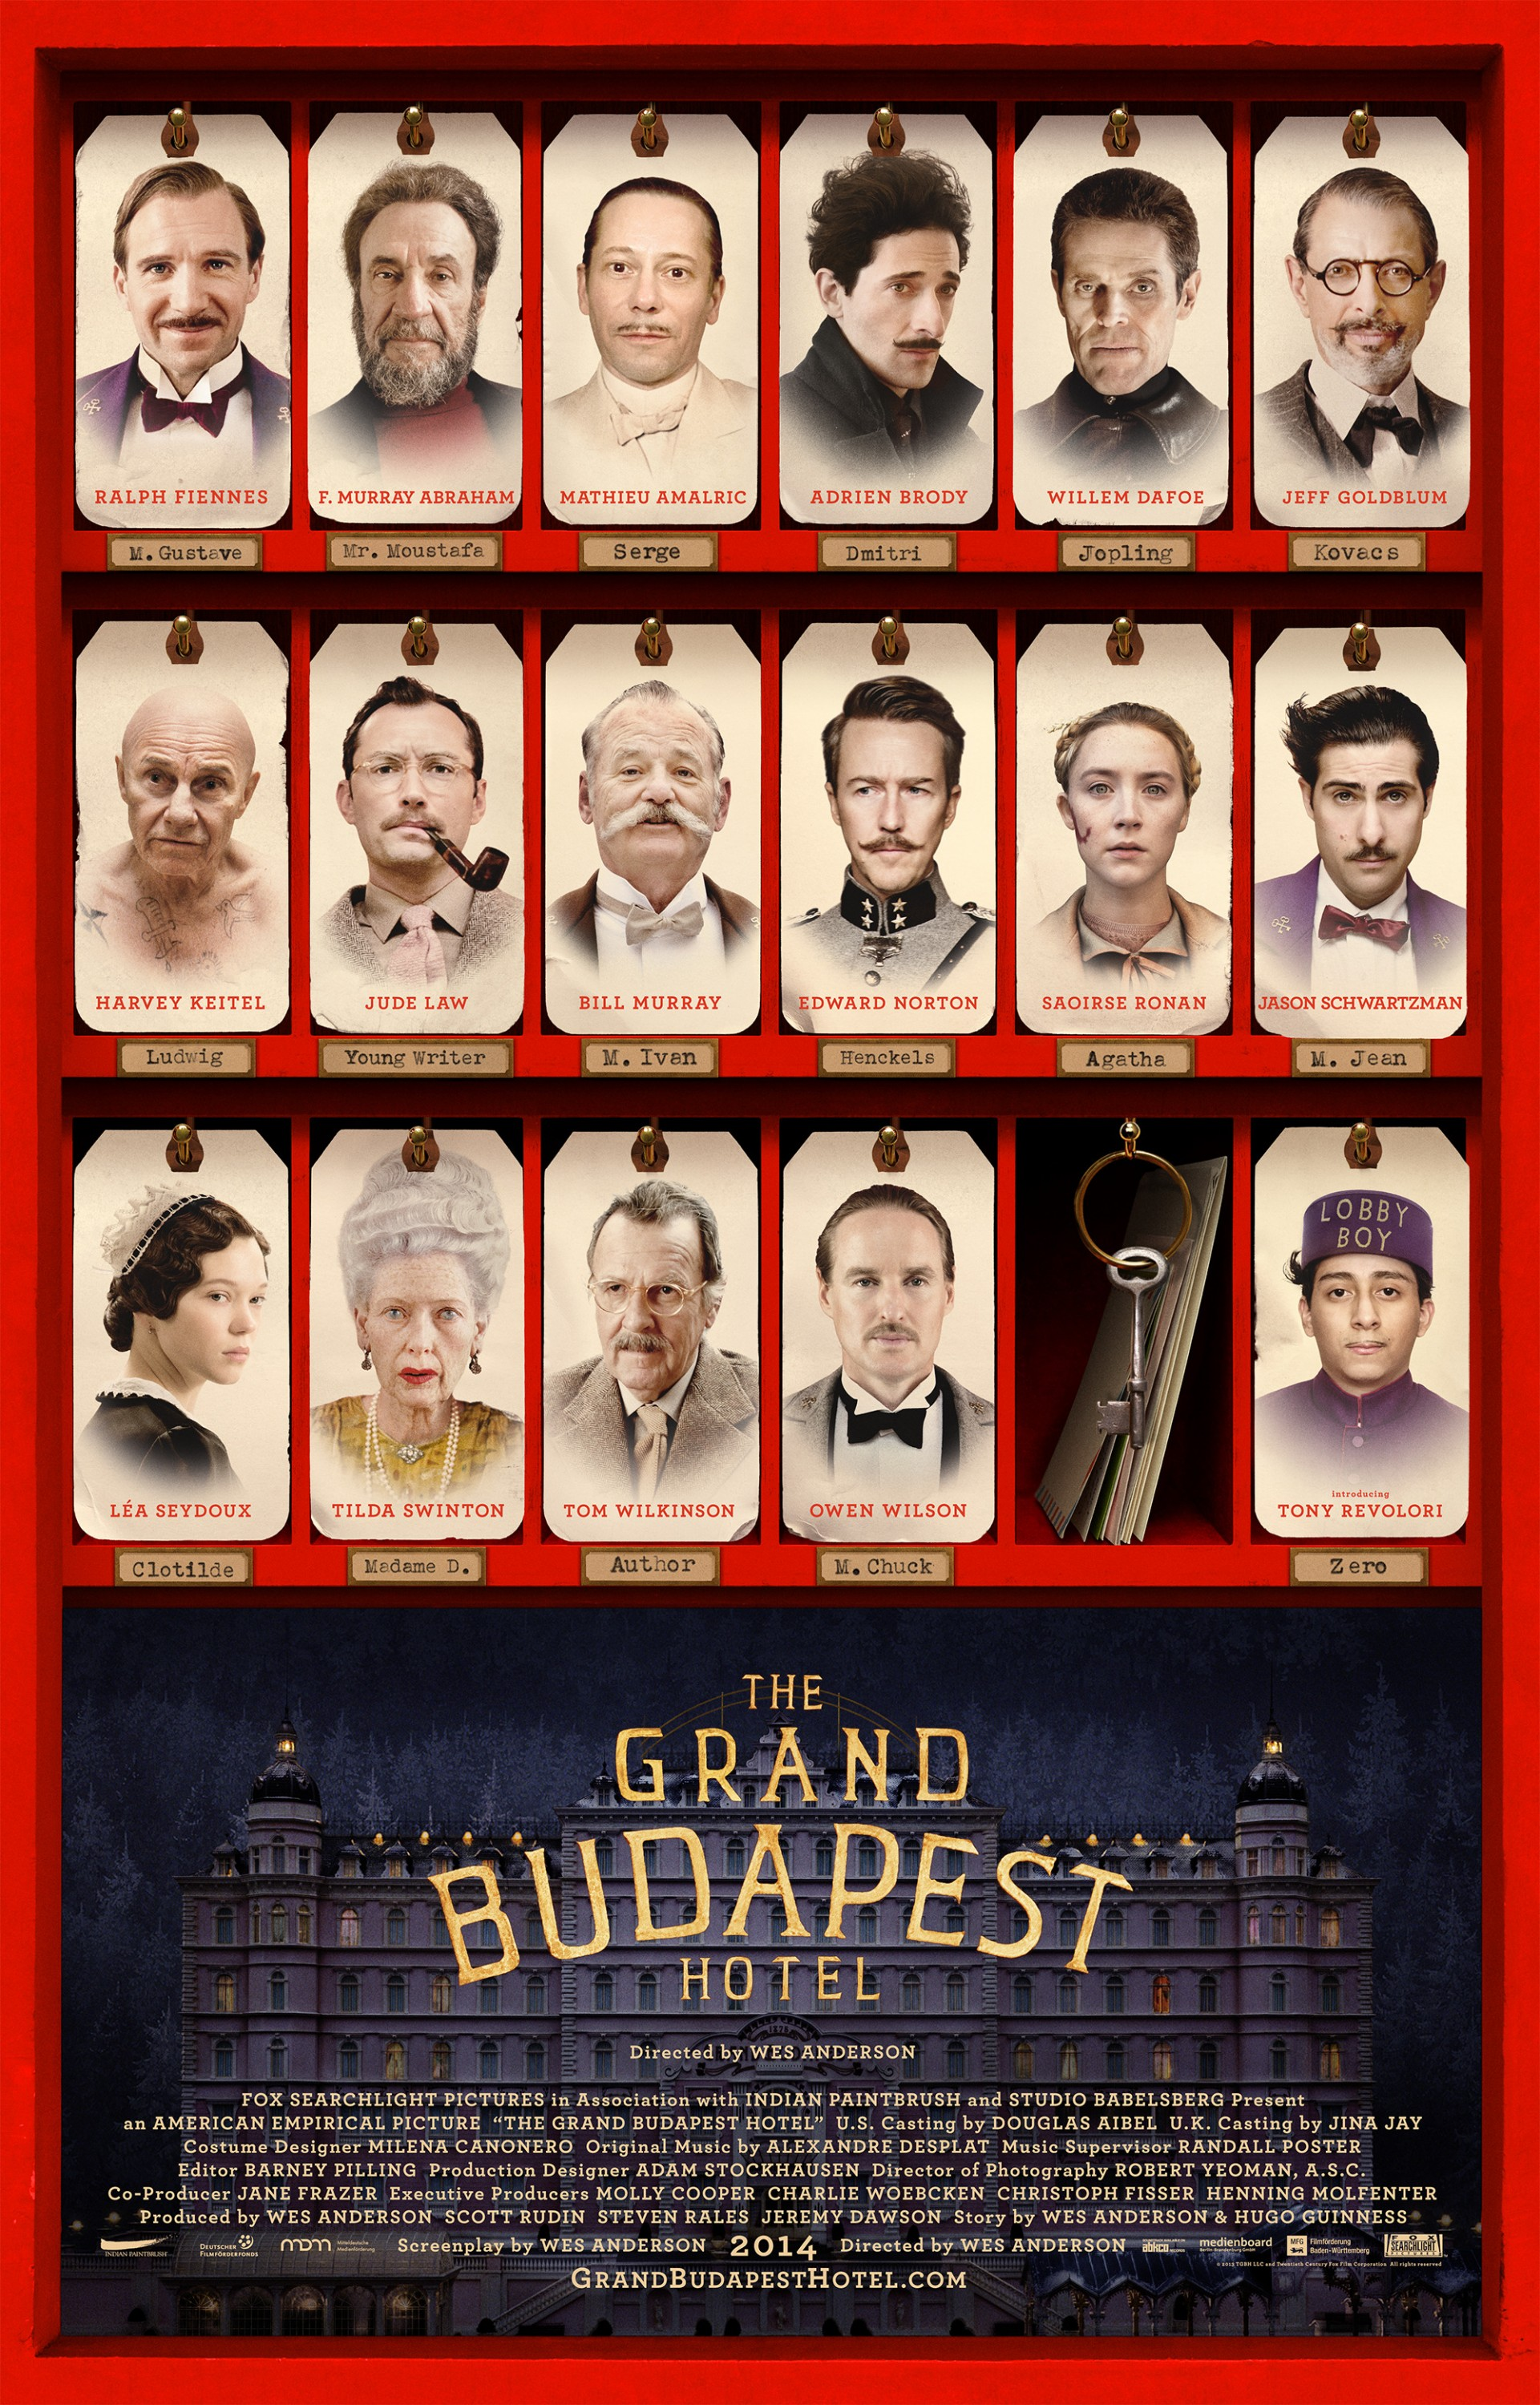 The Grand Budapest Hotel-Official Poster Banner PROMO POSTER XXLG-19DEZEMBRO2013